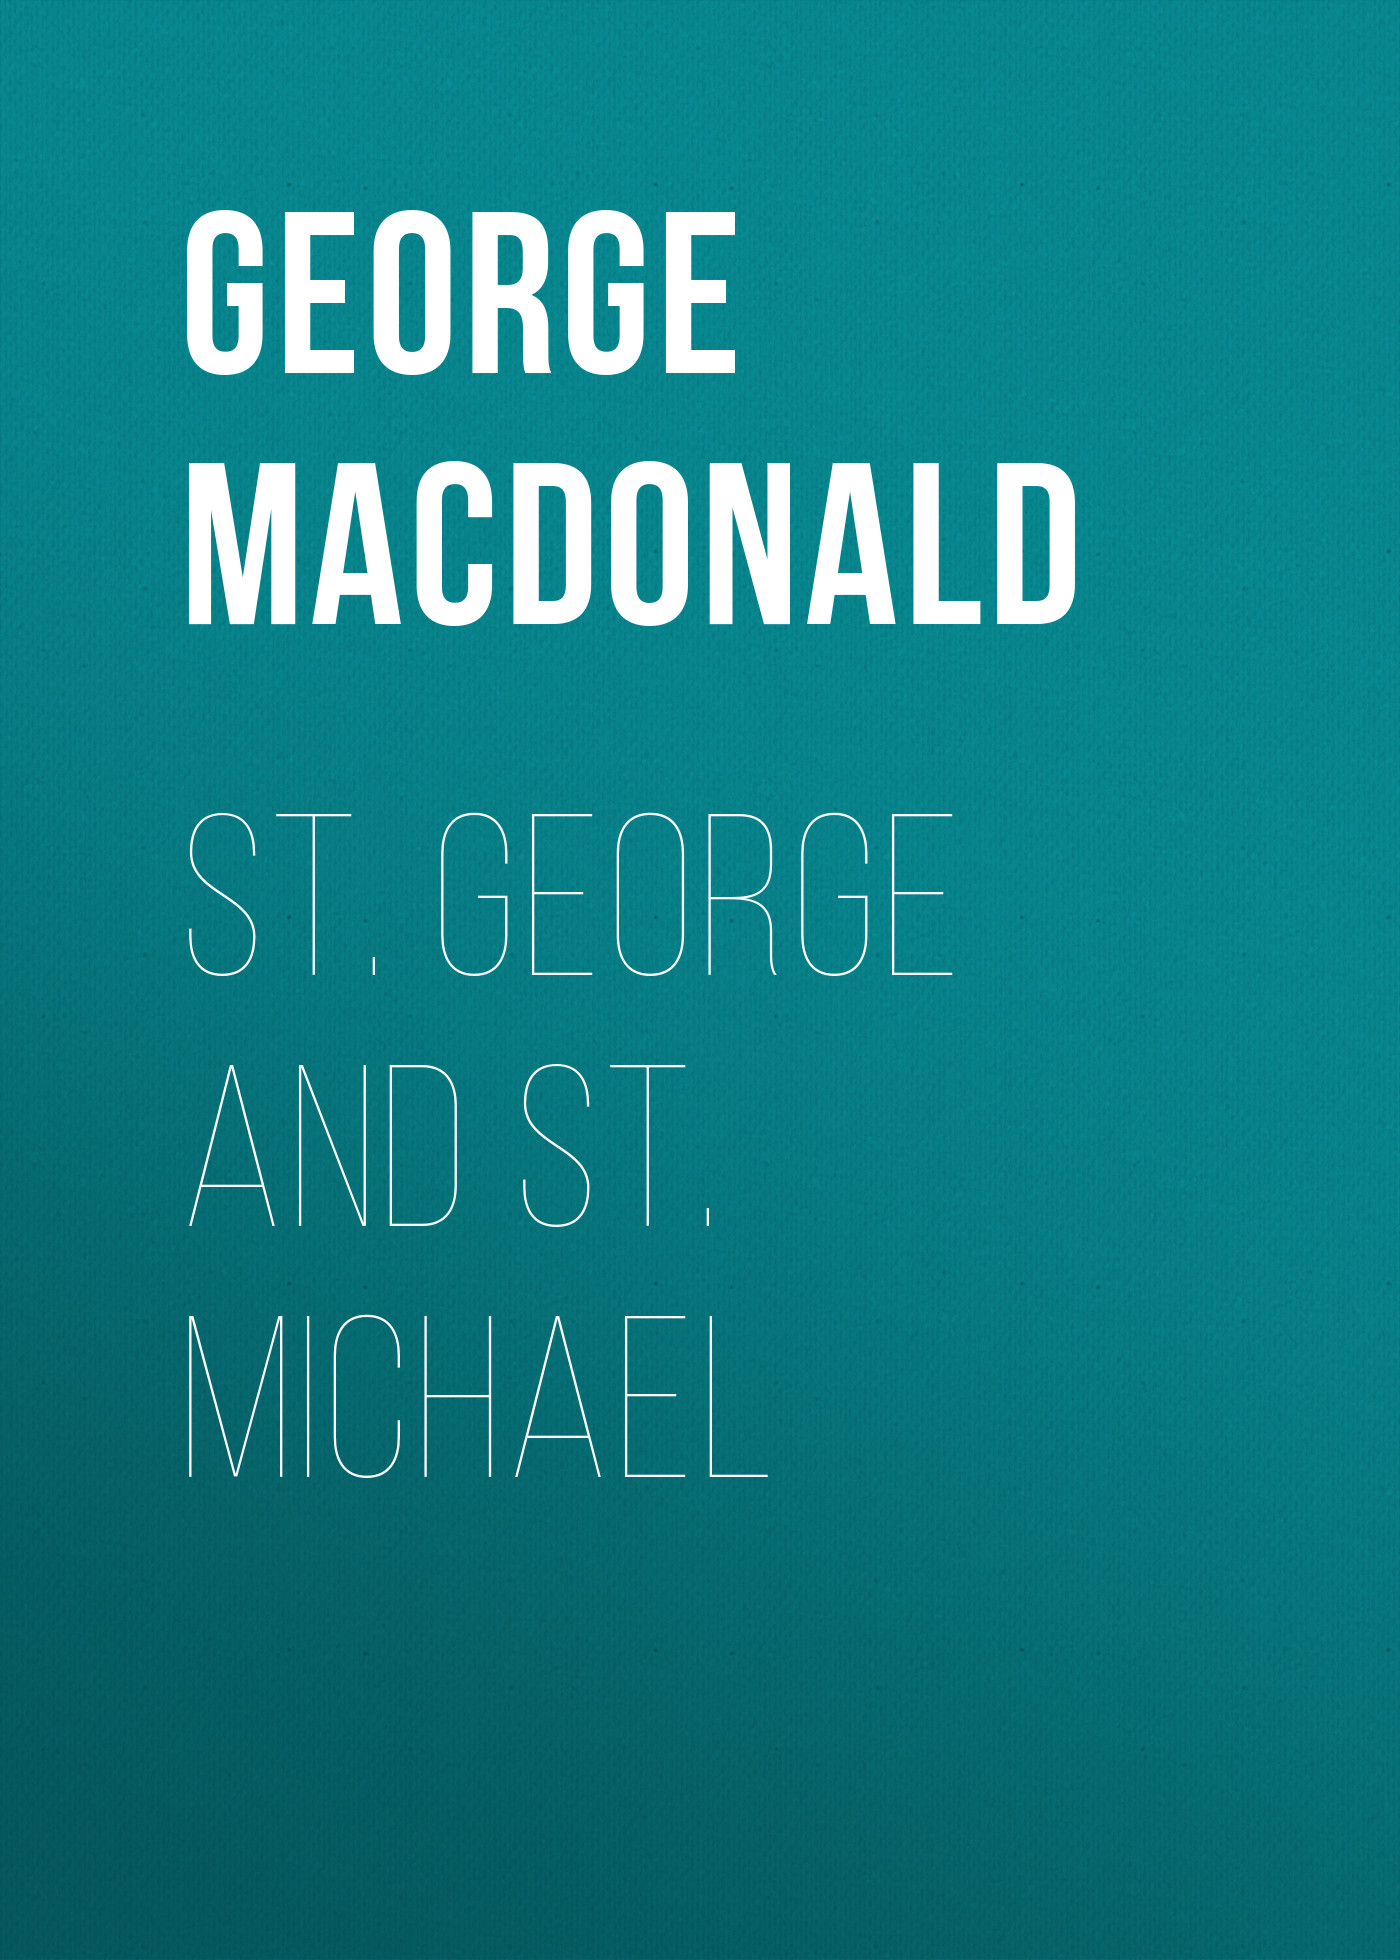 все цены на George MacDonald St. George and St. Michael онлайн